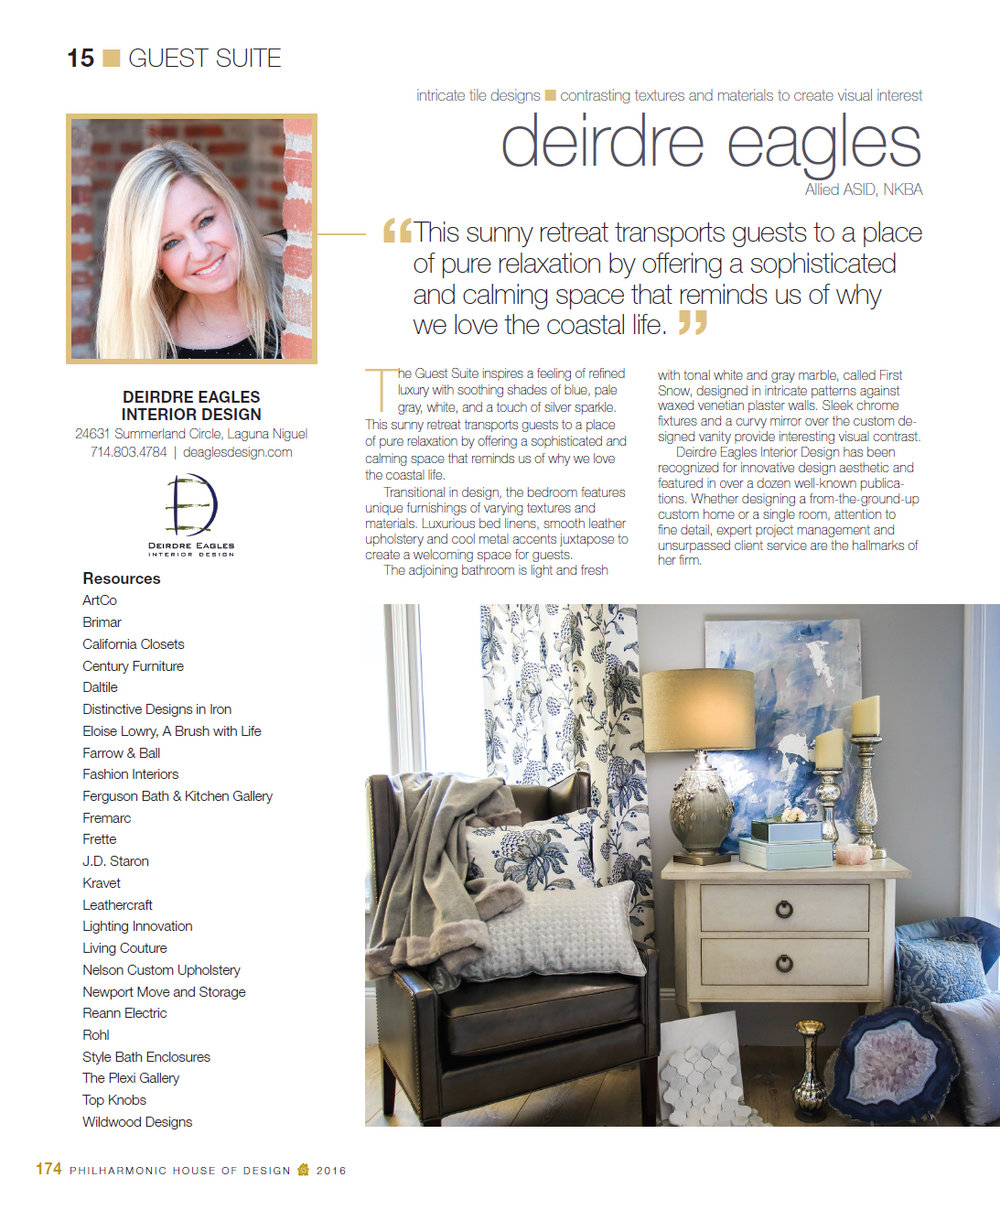 Kitchen And Bath Design News Press Awards Deirdre Eagles Design